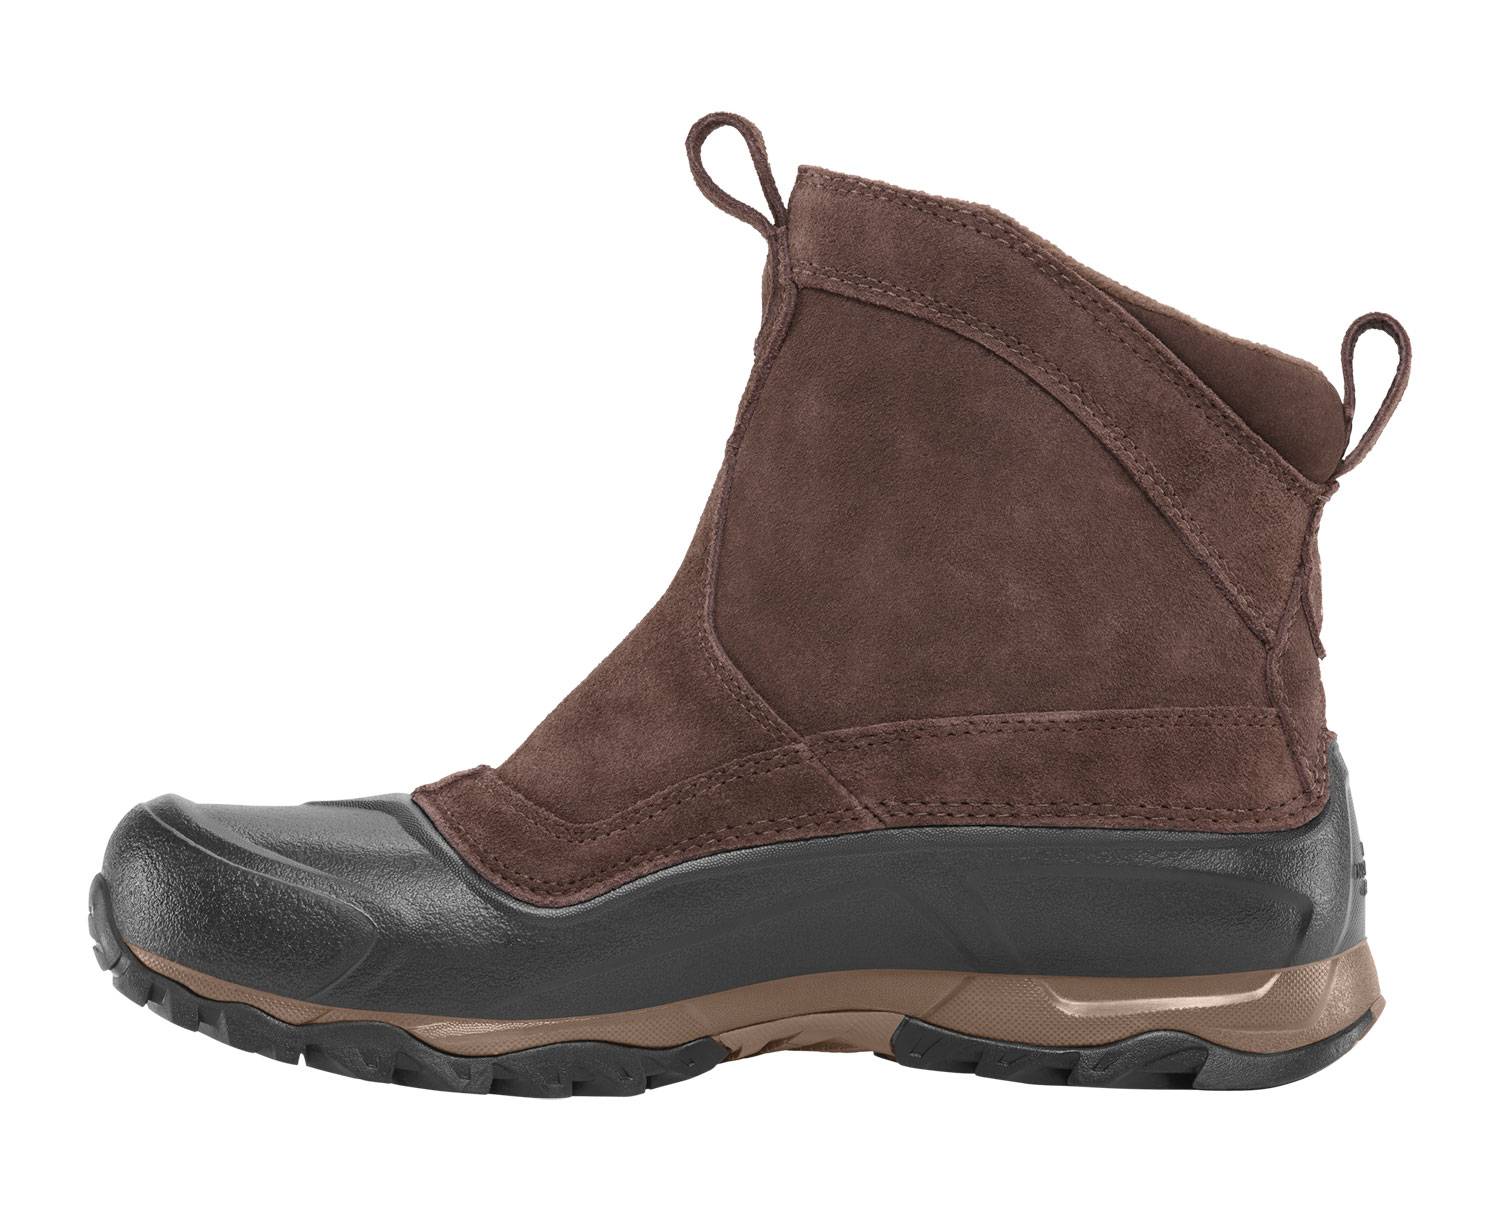 Easy on, easy off, pull-on, extremely lightweight, flexible, protective, waterproof winter boot with a protective EVA shell; keeps you light on your feet while navigating treacherous winter terrain.Key Features of The North Face Snowfuse Pull On Boots: Waterproof, BLC-compliant suede upper Waterproof construction for ultimate weather protection 200g Heatseeker insulation Fleece inner lining for all-day warmth Dual injection-molded NorthLight EVA lightweight, protective, durable shell Injection-molded EVA midsole Midfoot internal nylon shank TNF Winter Grip rubber outsole - $59.95